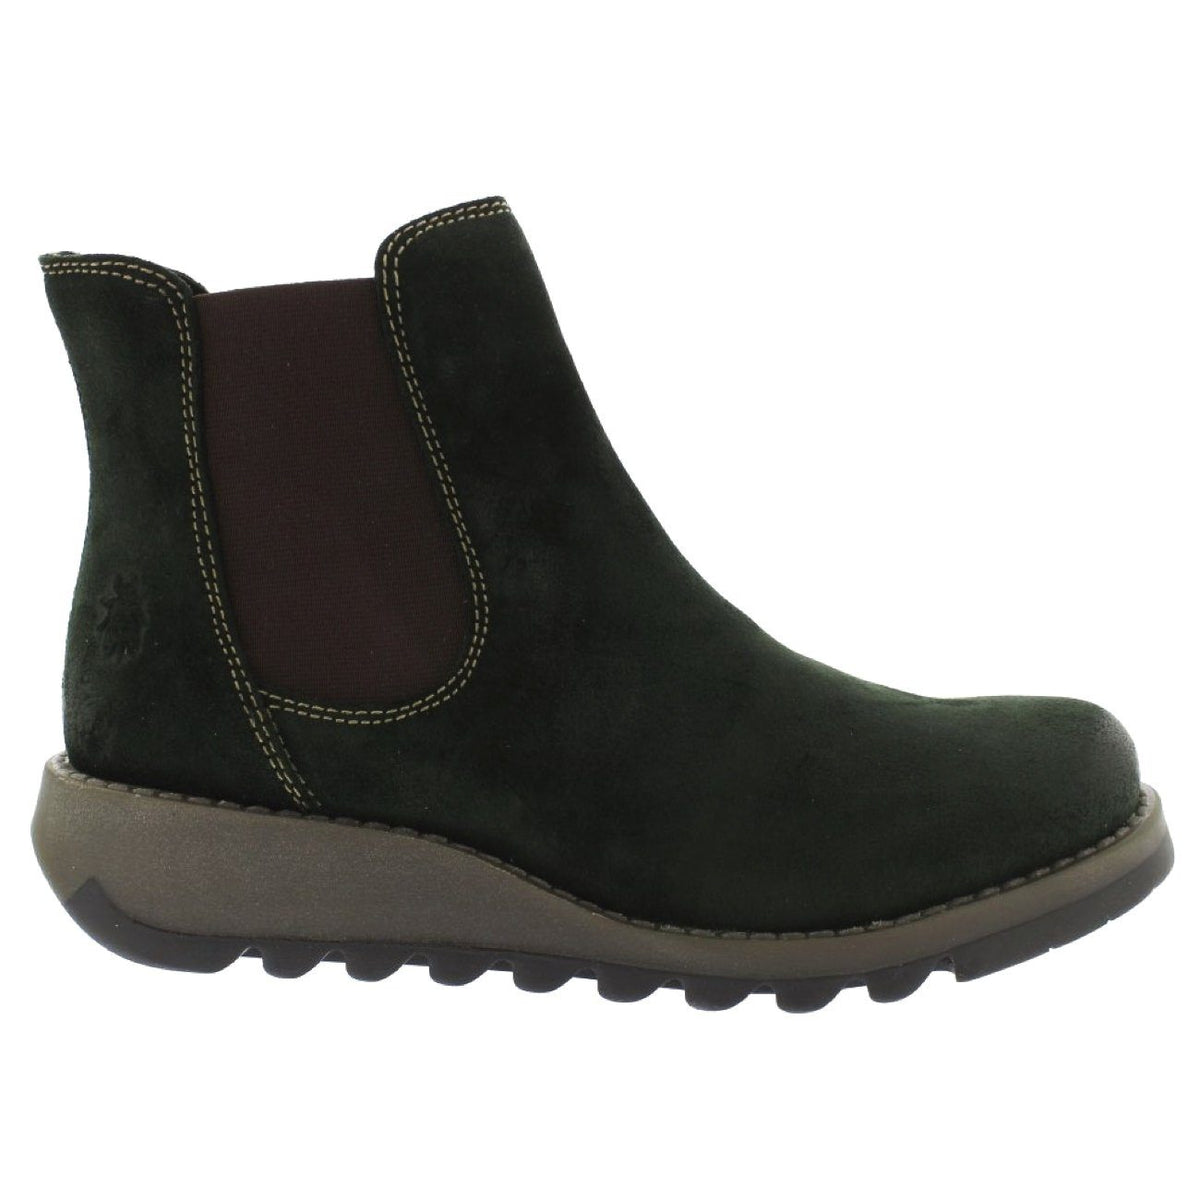 Fly London, FLW21 Salv, Boot, Oiled Suede Leather, Green Forest